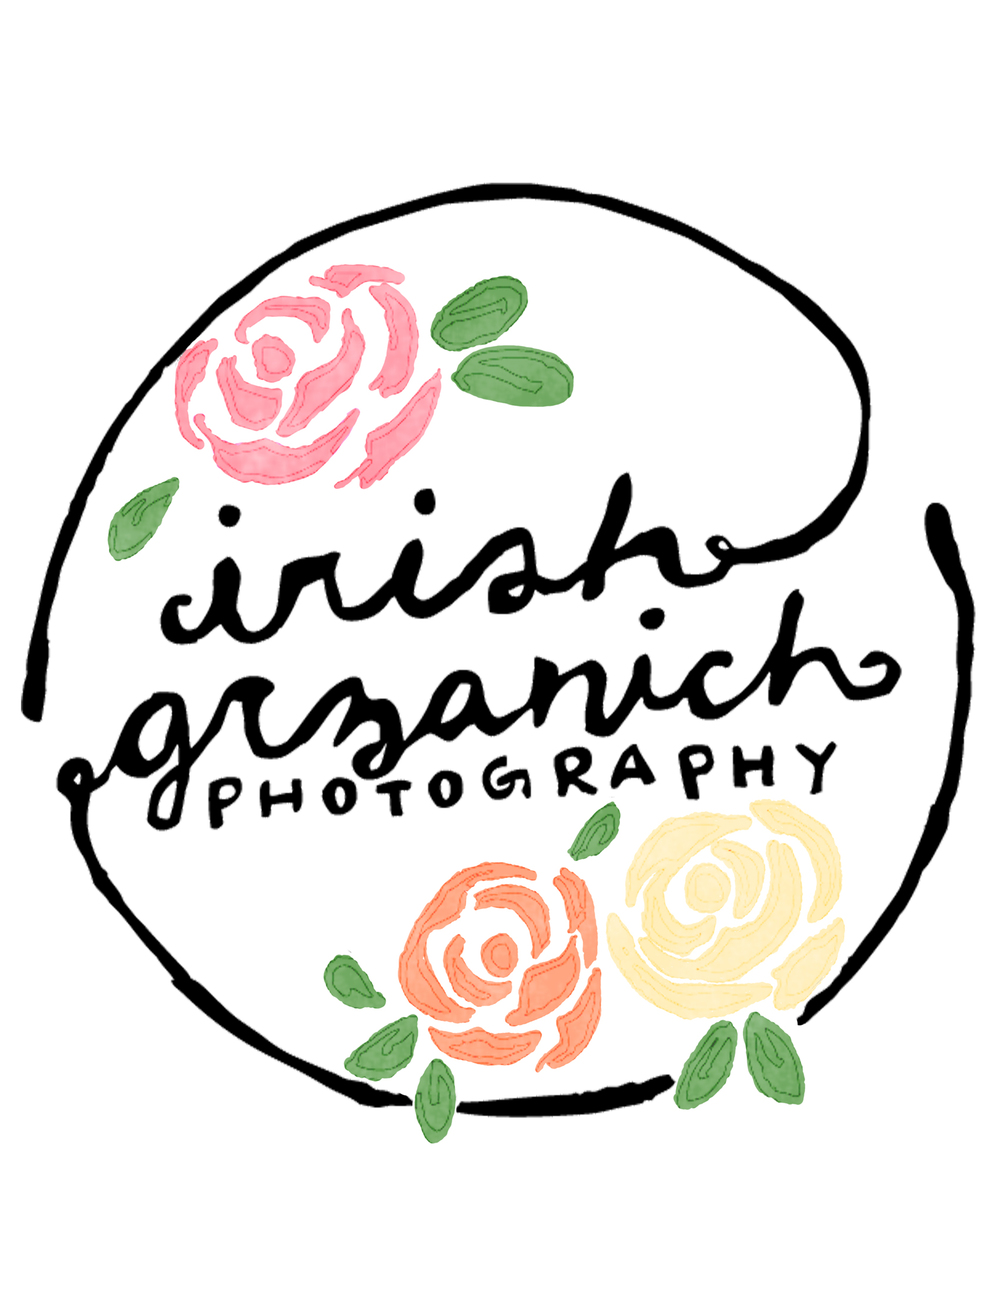 Irish Grzanich Photography